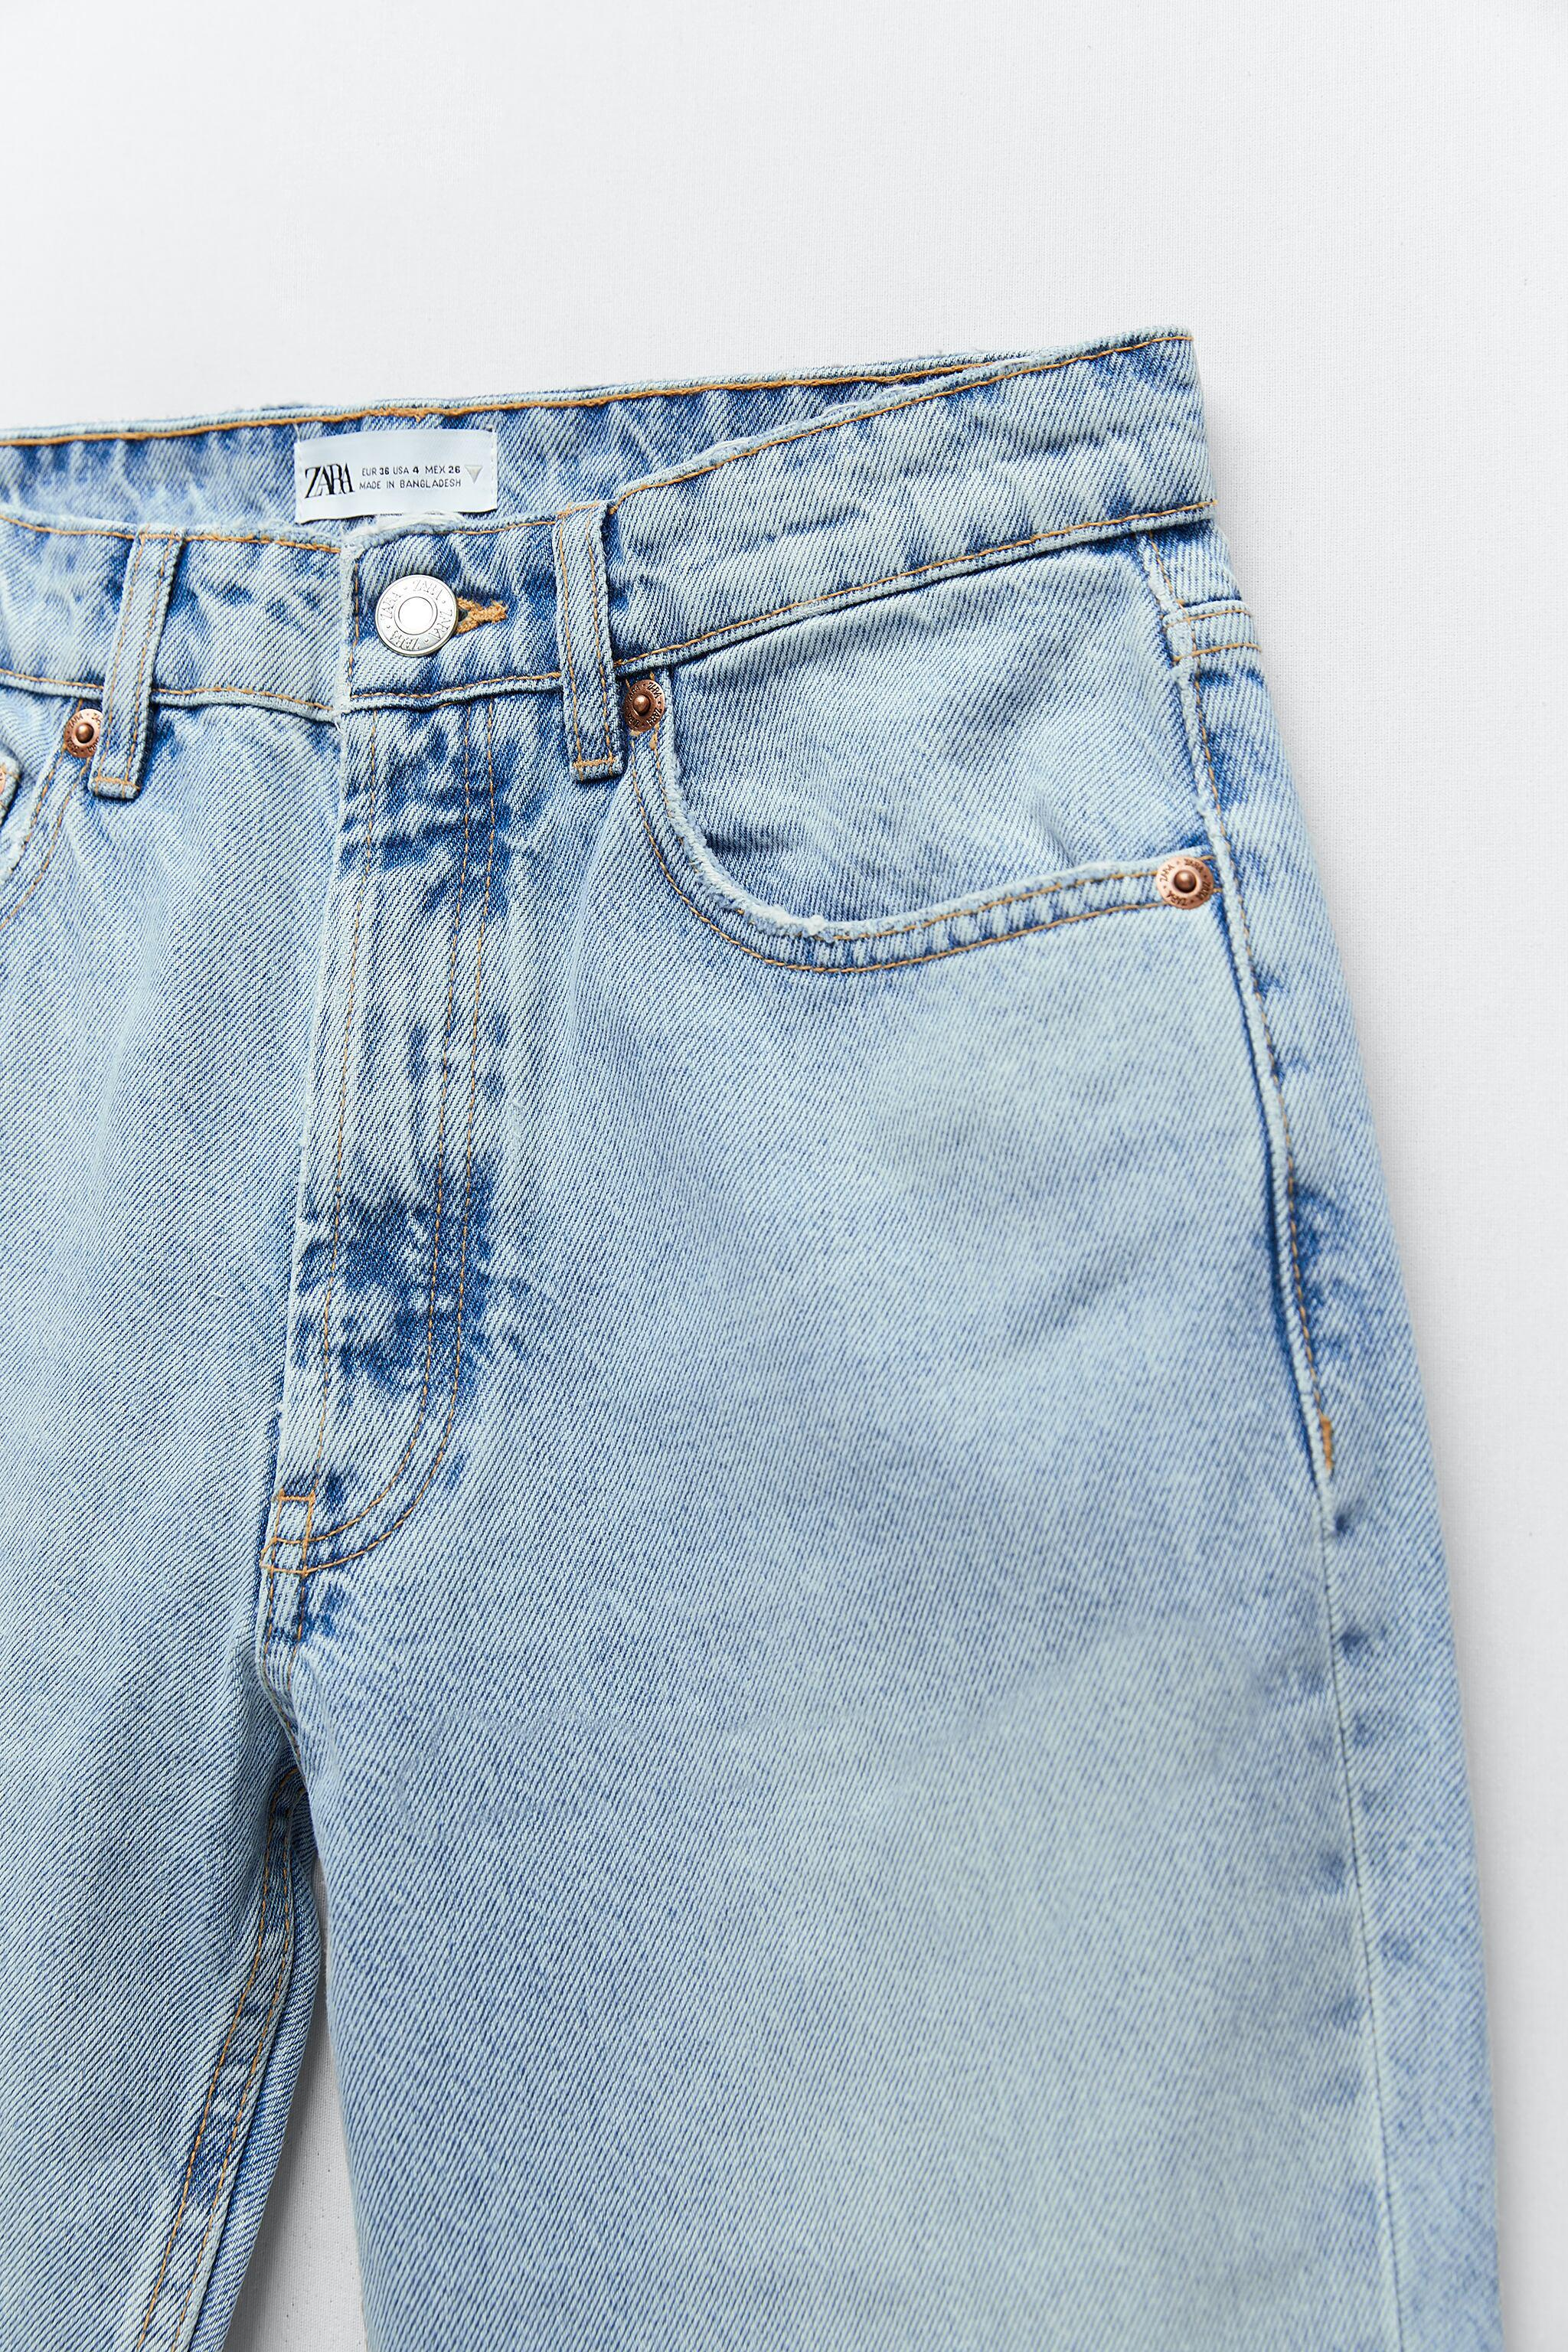 MID-RISE STRAIGHT LEG ANKLE LENGTH JEANS 7